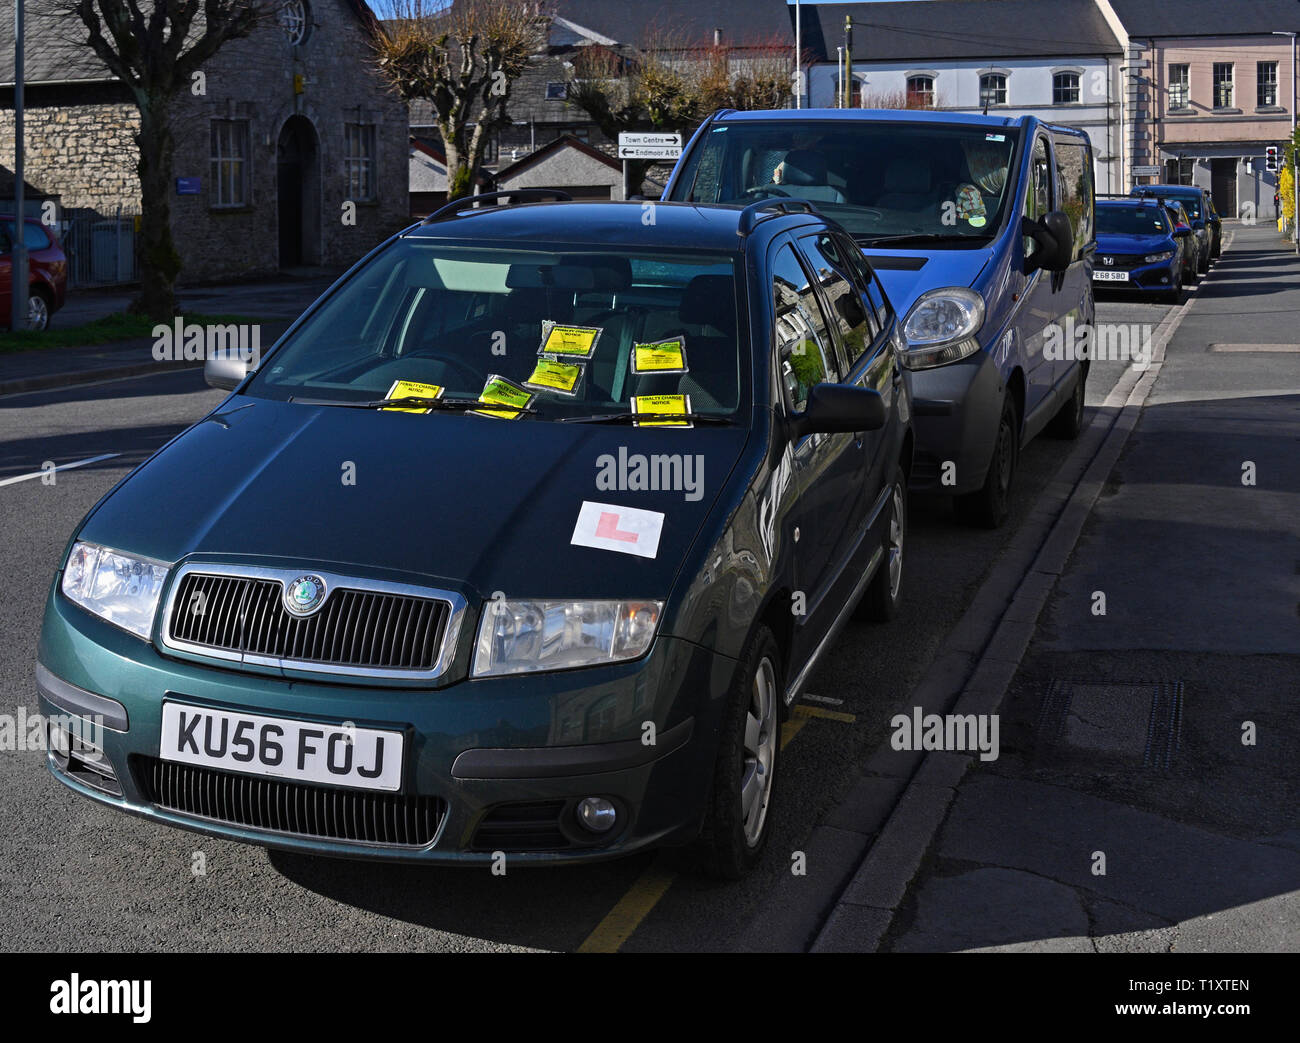 Illegally parked car on yellow line with six penalty charge notices. Parkside Road, Kendal, Cumbria, England, United Kingdom, Europe. - Stock Image